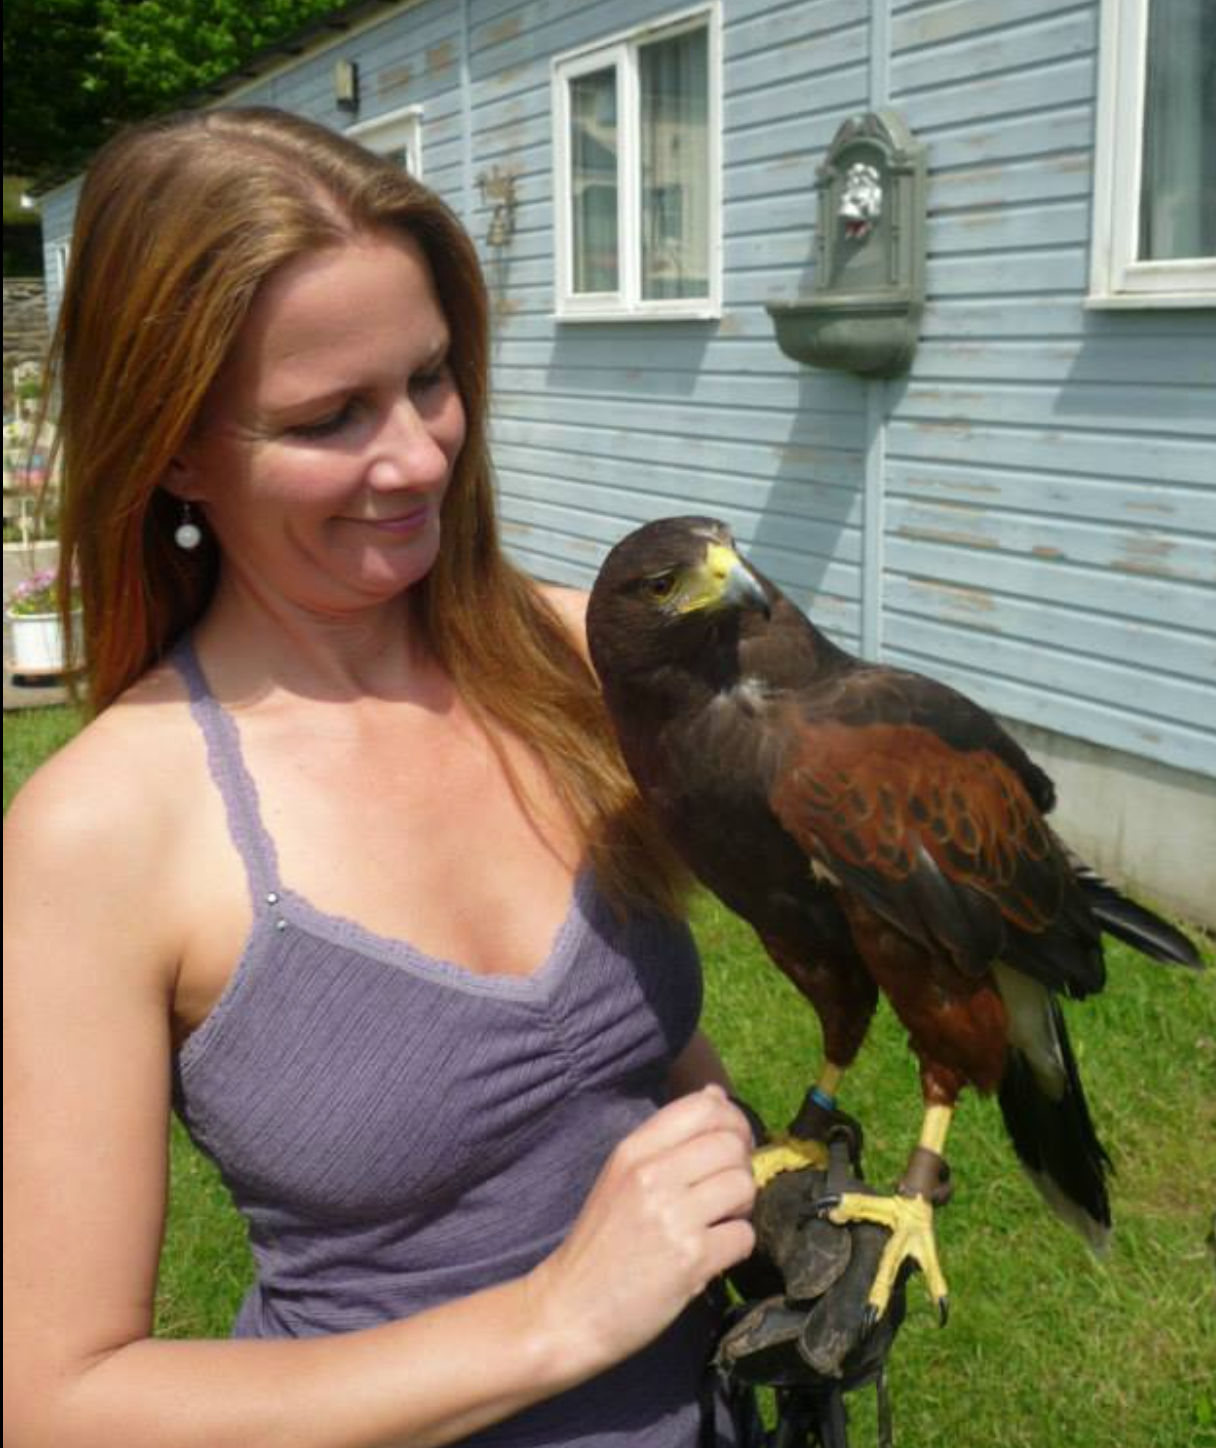 Personalised hawk experience   Meet Lani, Lani is a 6 year old beautiful harris hawk. You can enjoy a personalised experience with her Owner Mari-anne. With over 8 years experience both Mari-anne and Lani will wow you and leave you inspired and uplifted by this life affirming experience.  Hawk experiences last approx 45 minutes for 1-2 people and 90 minutes for 4+ people.  During your experience you will have the opportunity to hold & fly Lani.  You can enjoy your experience onsite or meet Lani by the lake about 10 minutes away.  Pre booking necessary.  £45 per person  Contact us directly on 01570 493619 for questions and bookings.